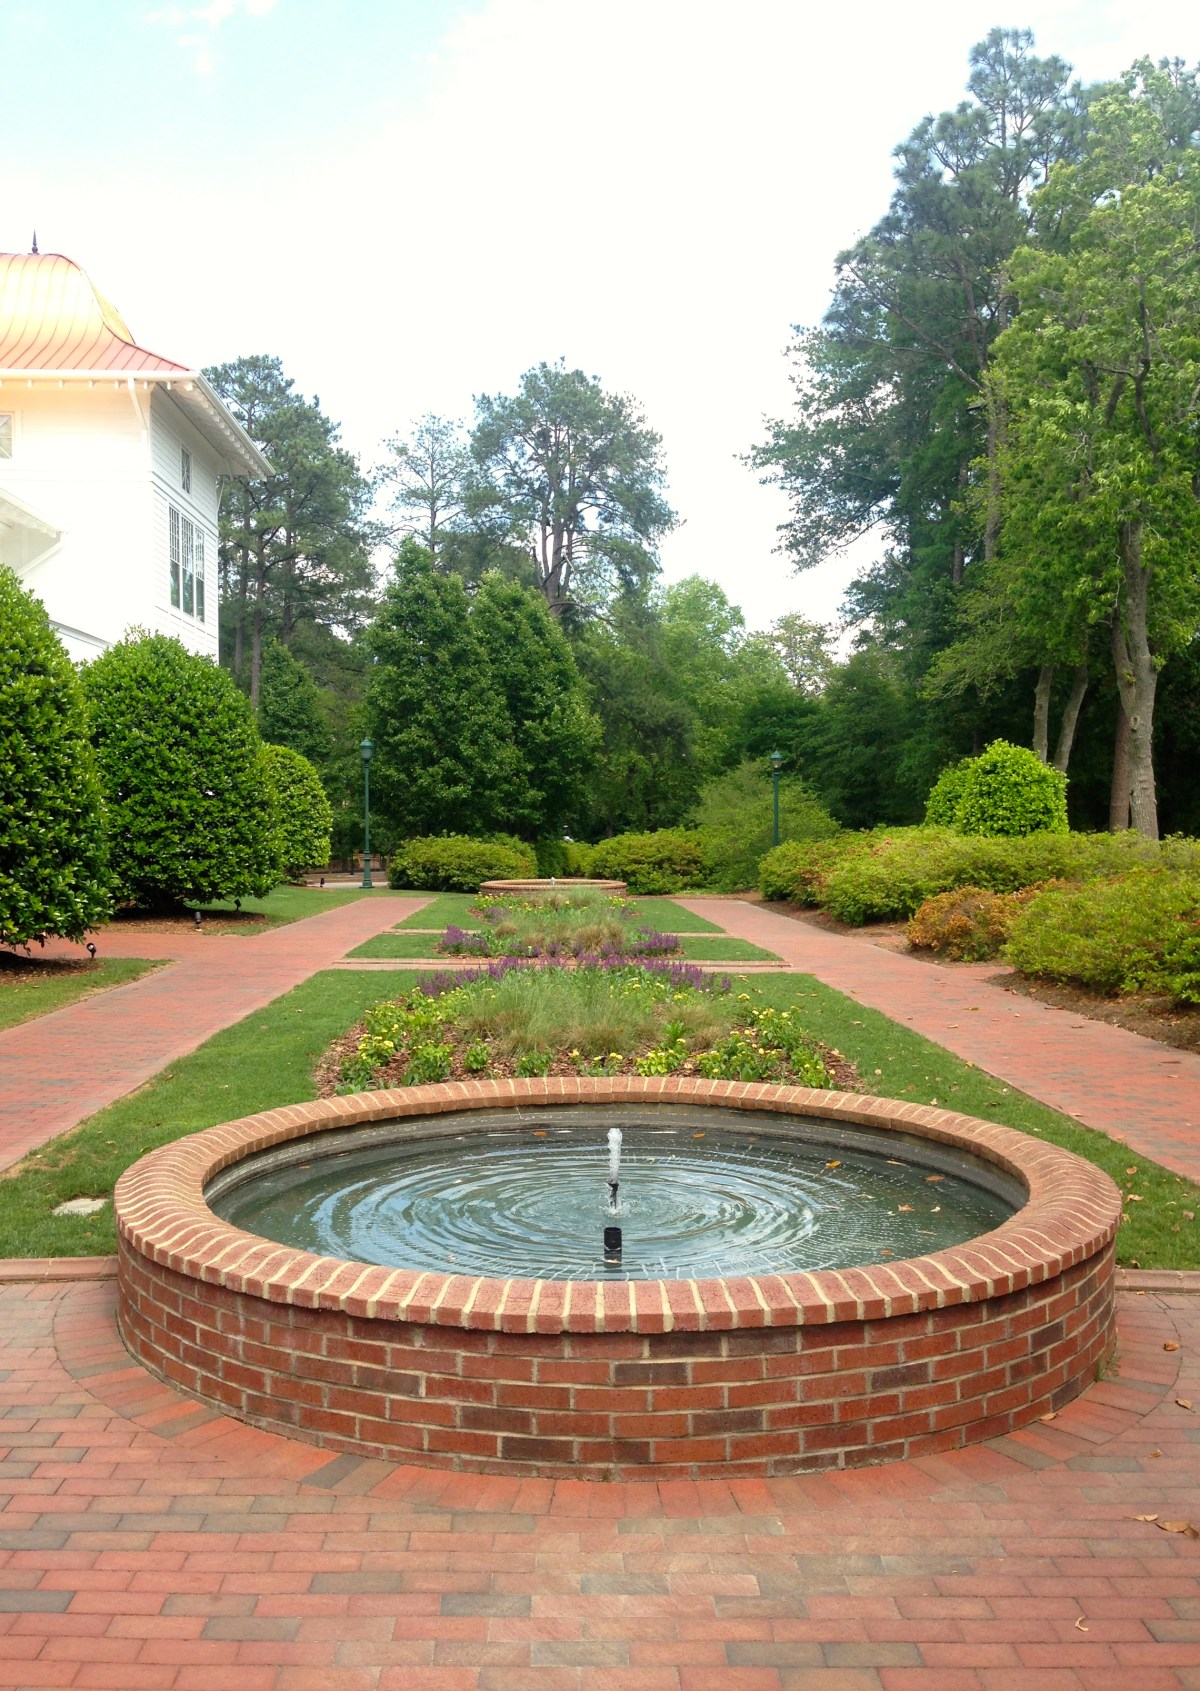 The Spa at Pinehurst Resort is ready for the U.S. Open